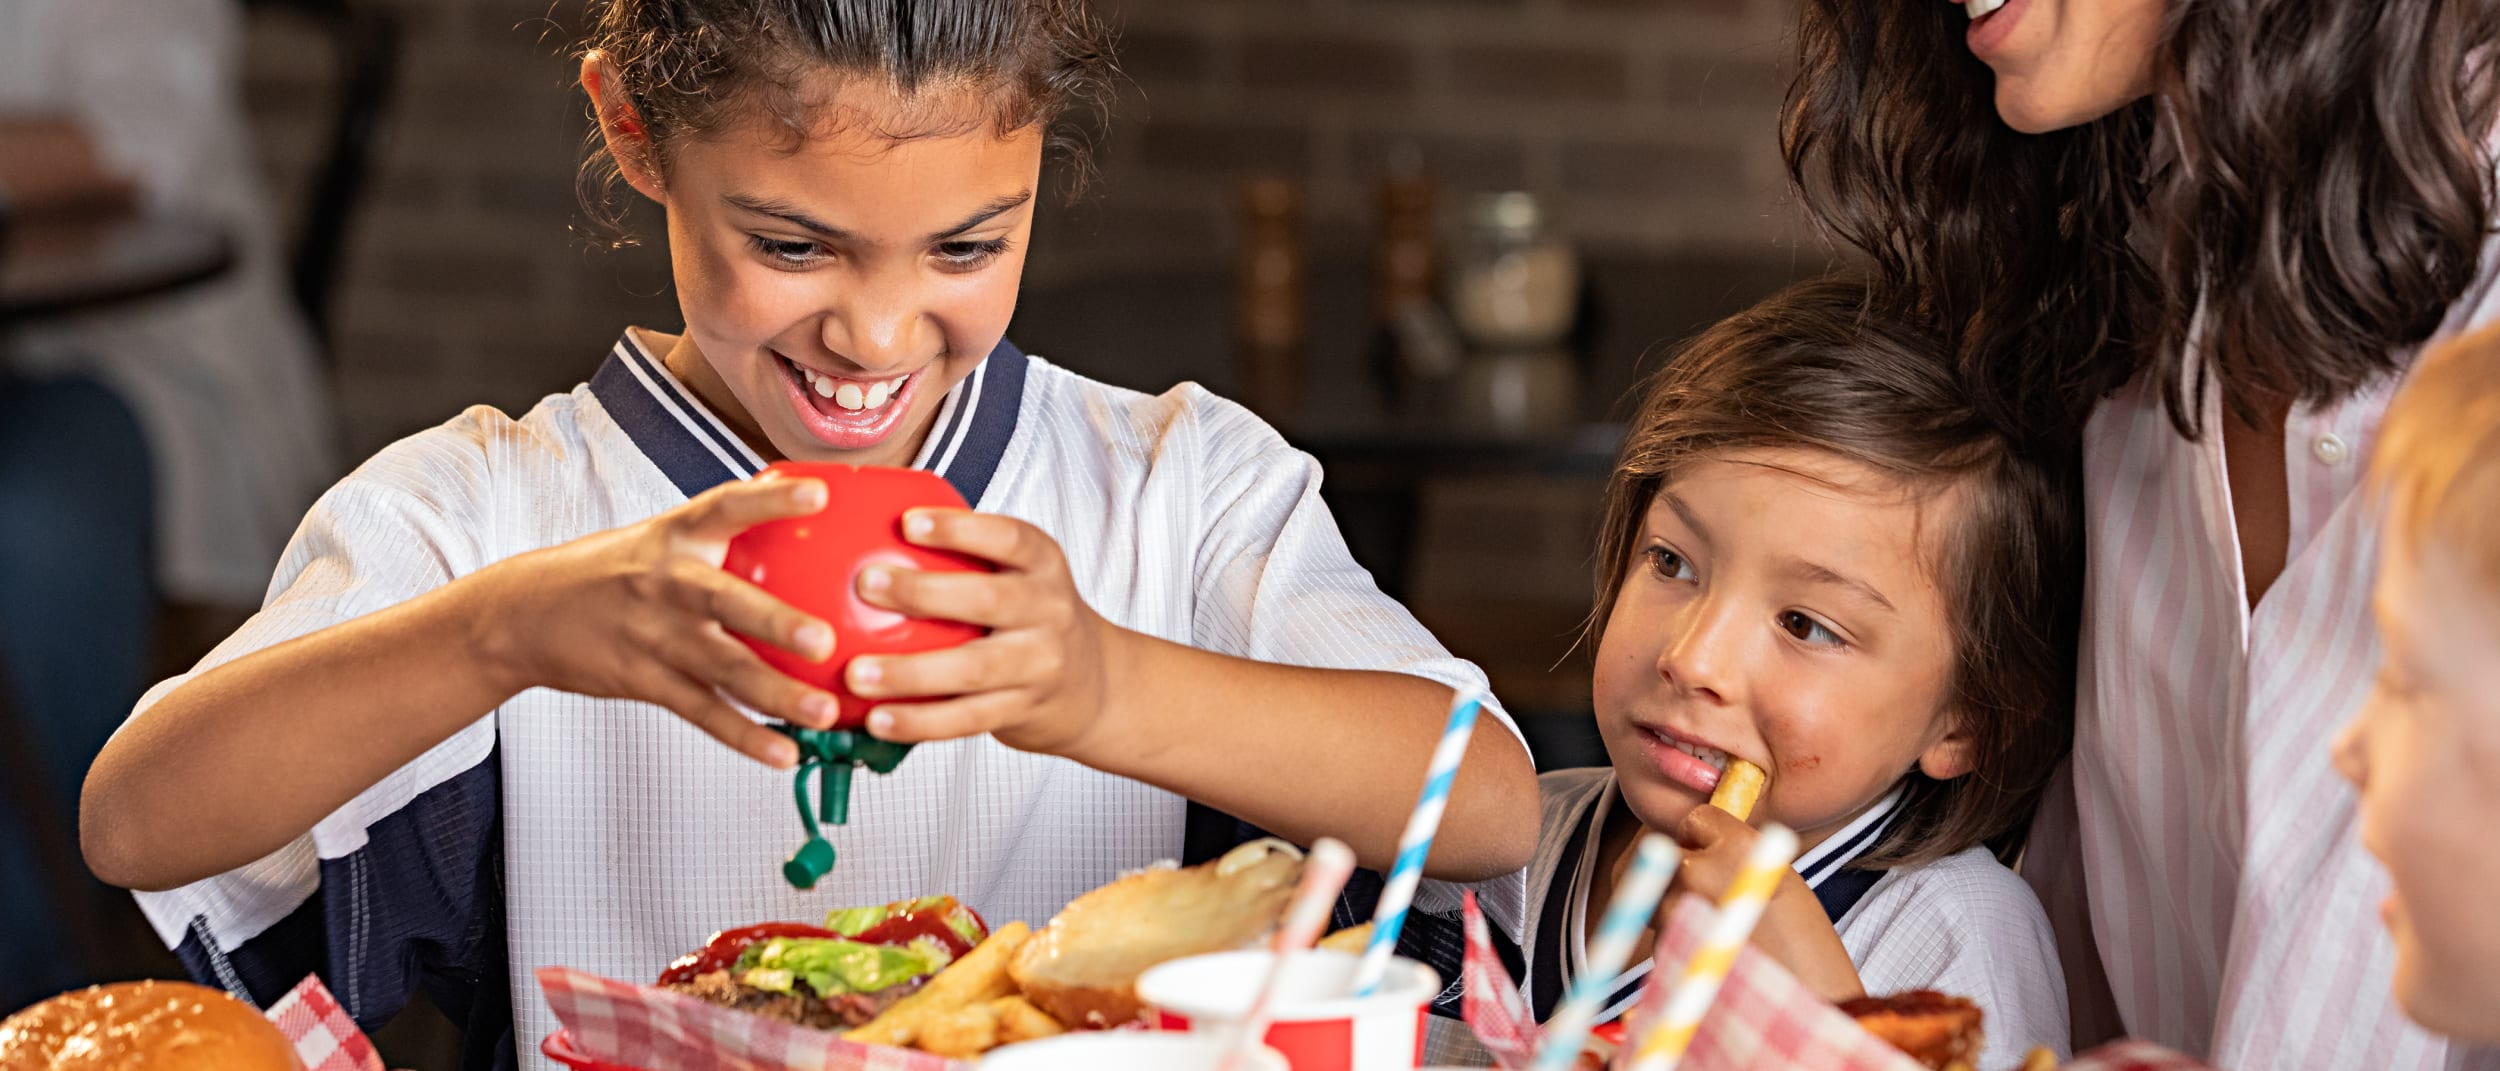 Degani Bakery Cafe: Free kids meal with any adult meal purchased!